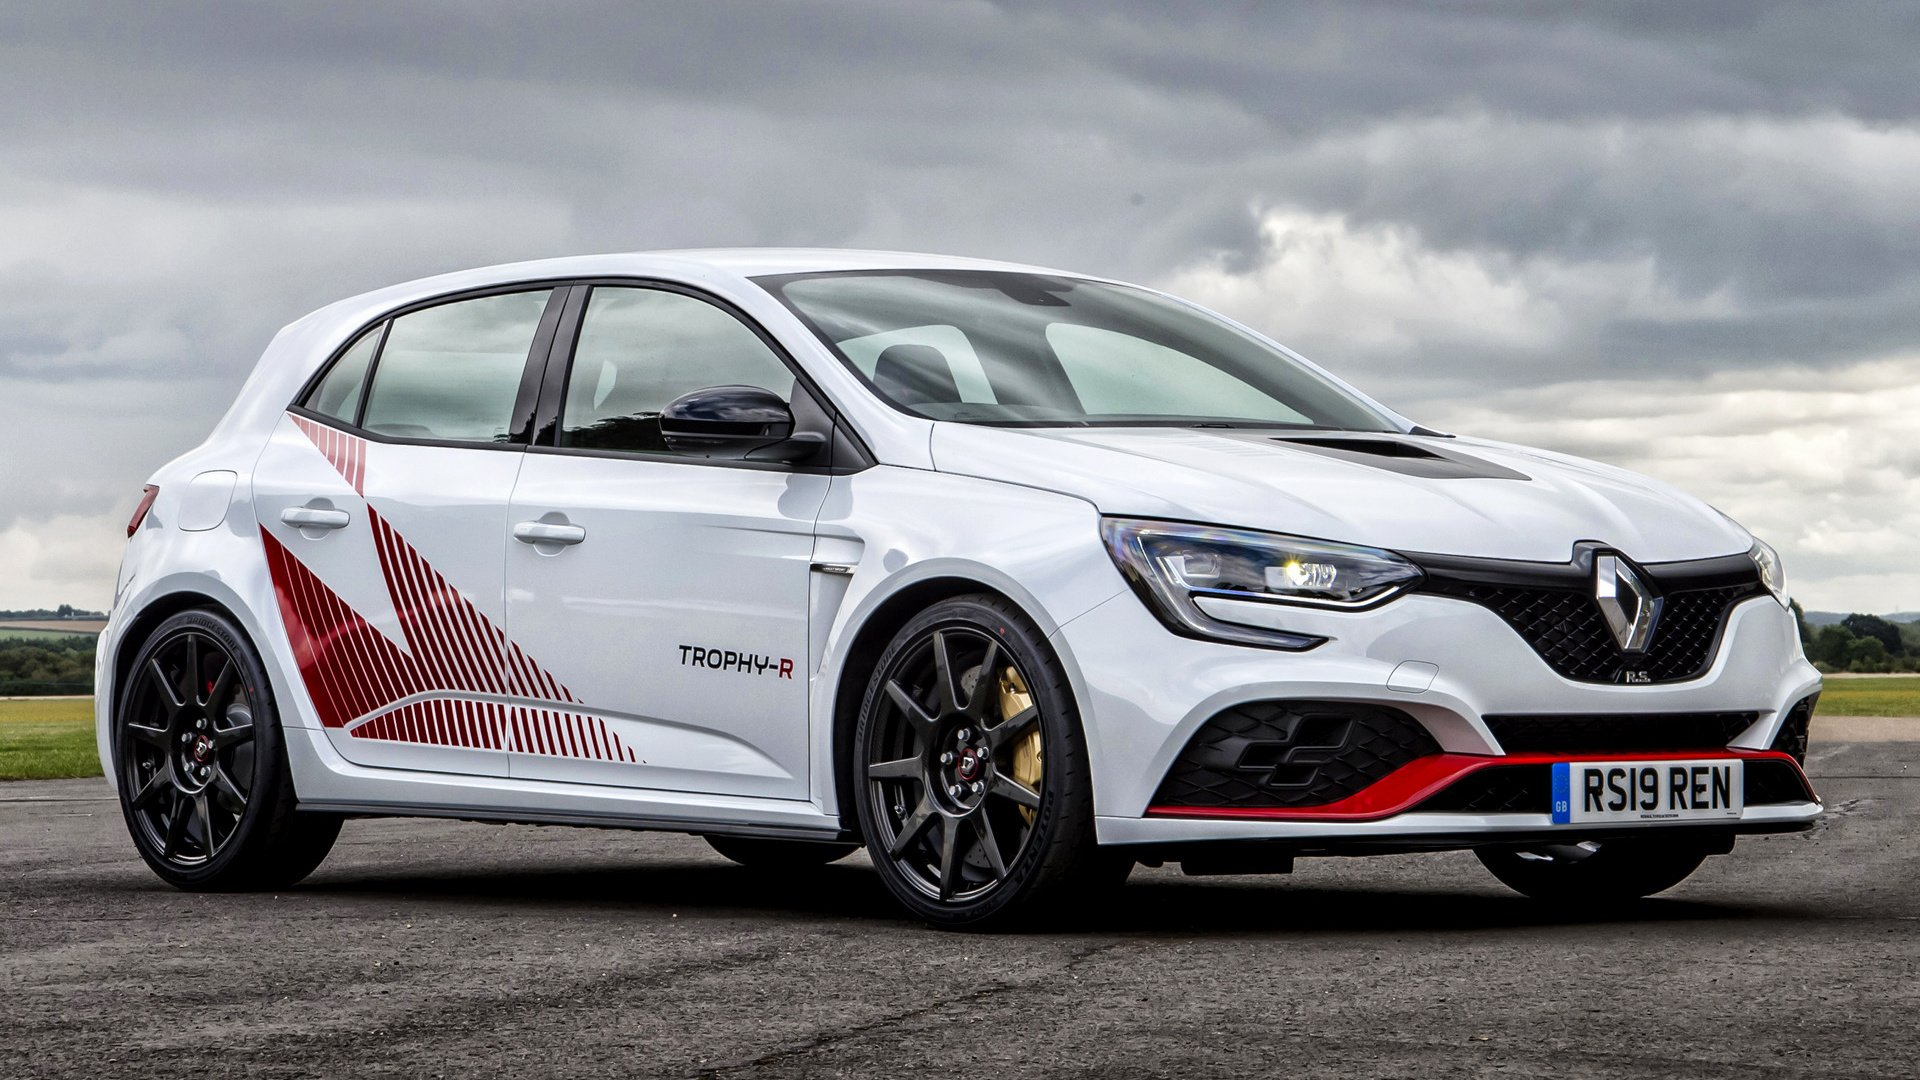 2019 Renault Megane Rs Trophy R Papel De Parede Hd Plano De Fundo 1920x1080 Id 1045358 Wallpaper Abyss